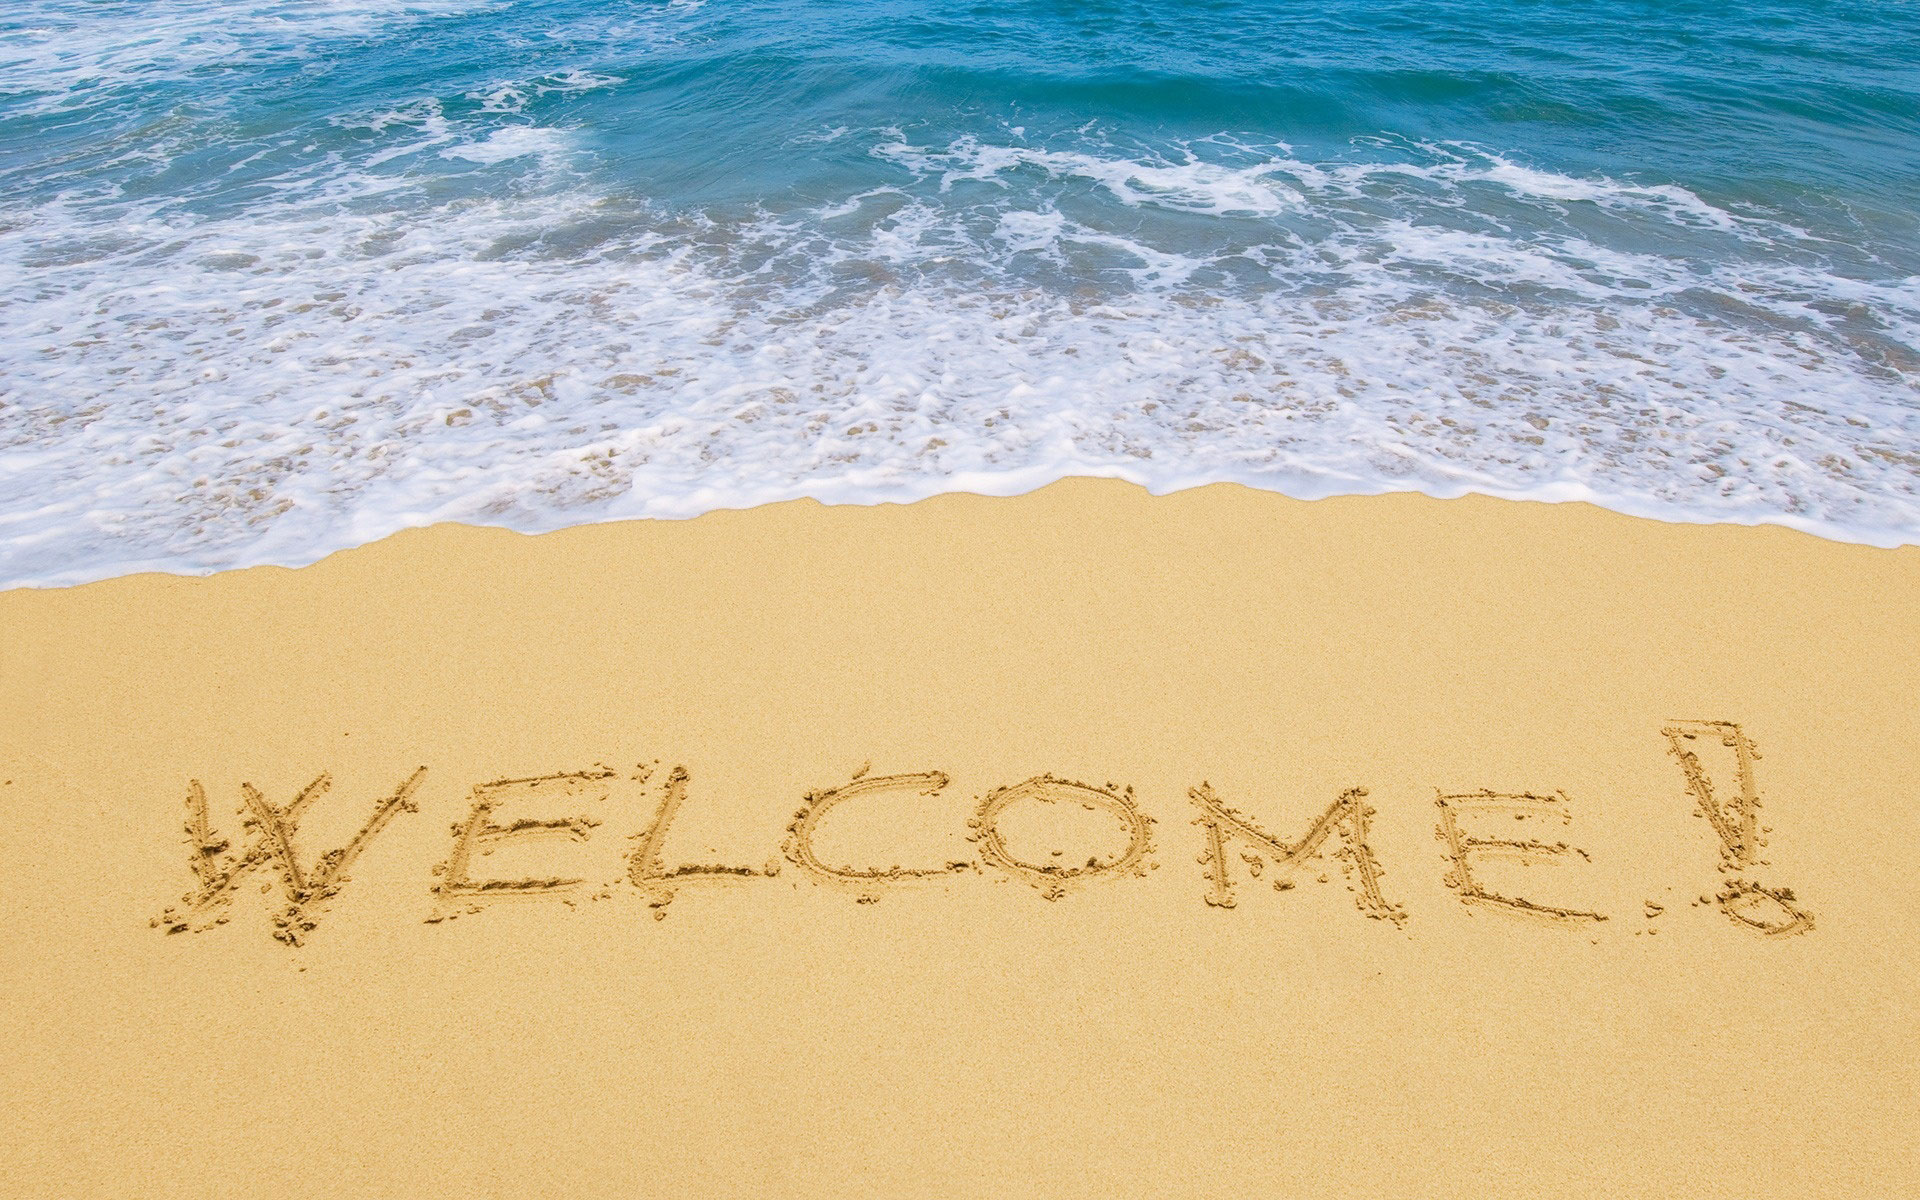 http://black-moon.fr/wp-content/uploads/wallpapers-naked-welcome-to-the-beach-hd-place-com-1920x1200.jpg